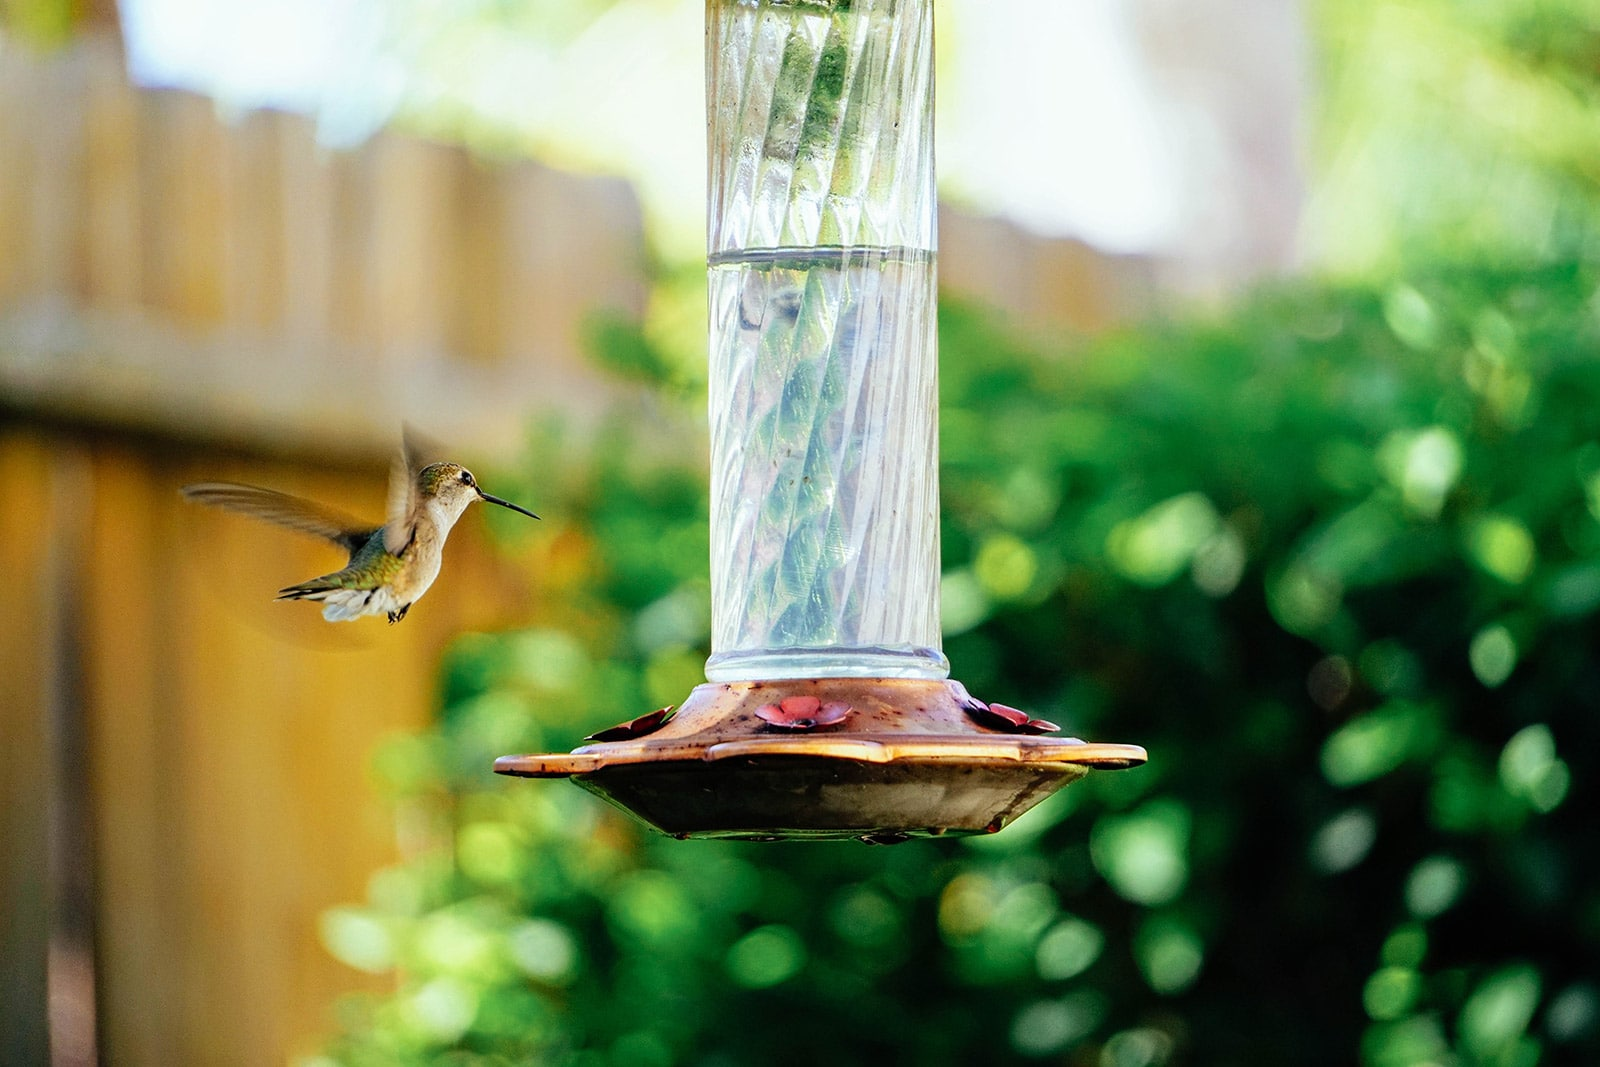 Hummingbird flying to a hanging feeder in the garden